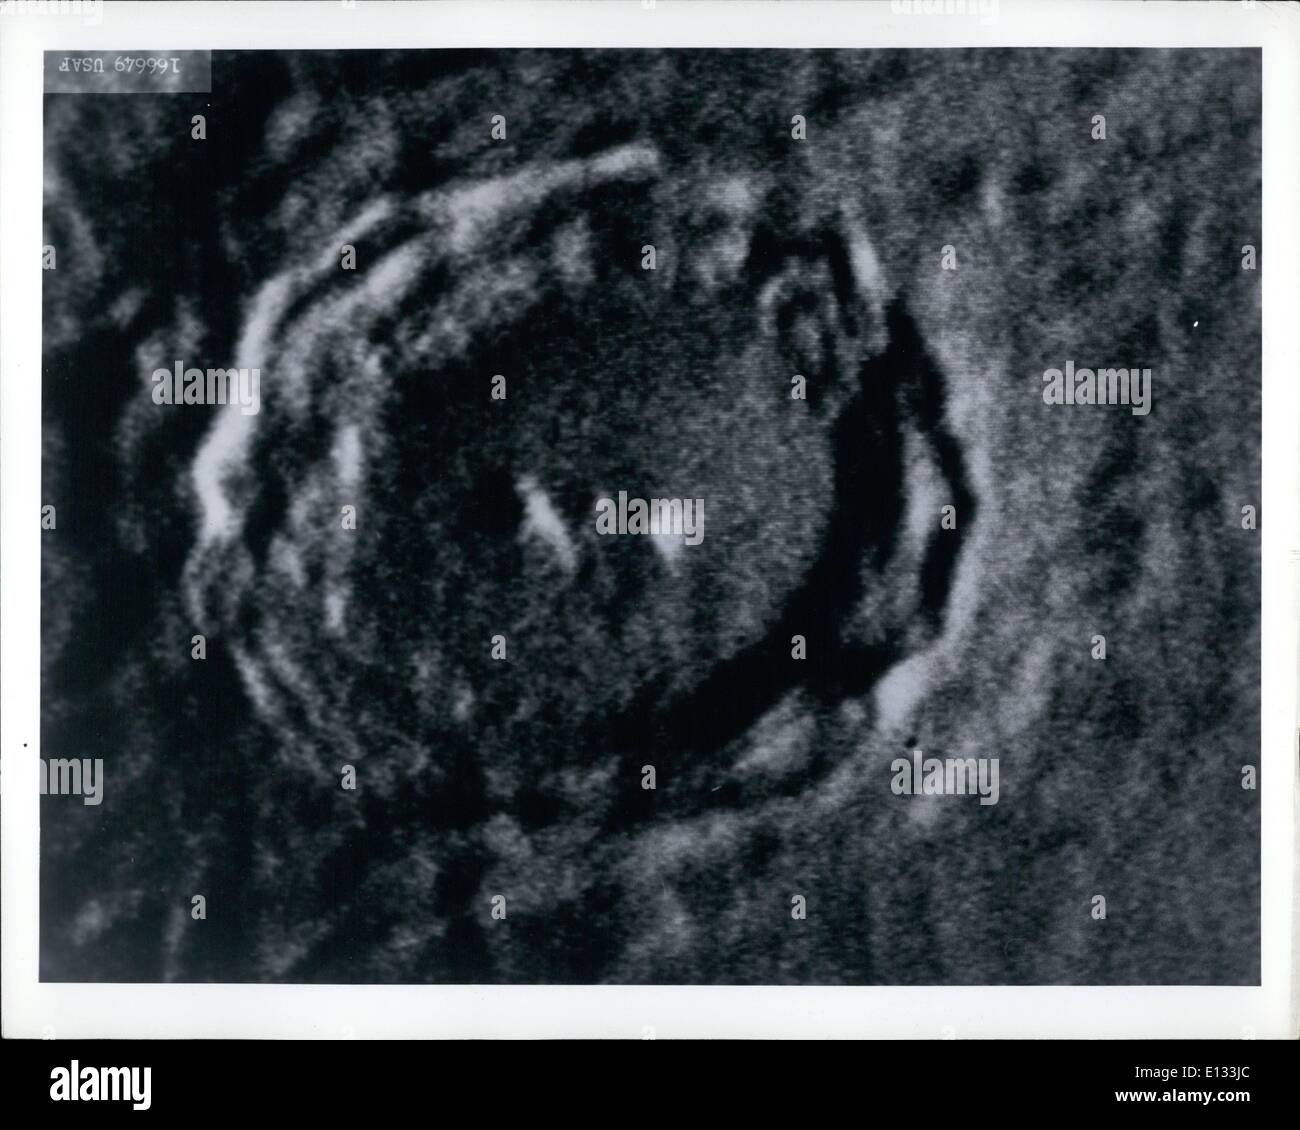 Feb. 26, 2012 - USAF - Crater Copernicus - This particular crater on the moon's surface is known as Copernicus, named for the Dutch astronomer. The center is 50 miles across. - Stock Image